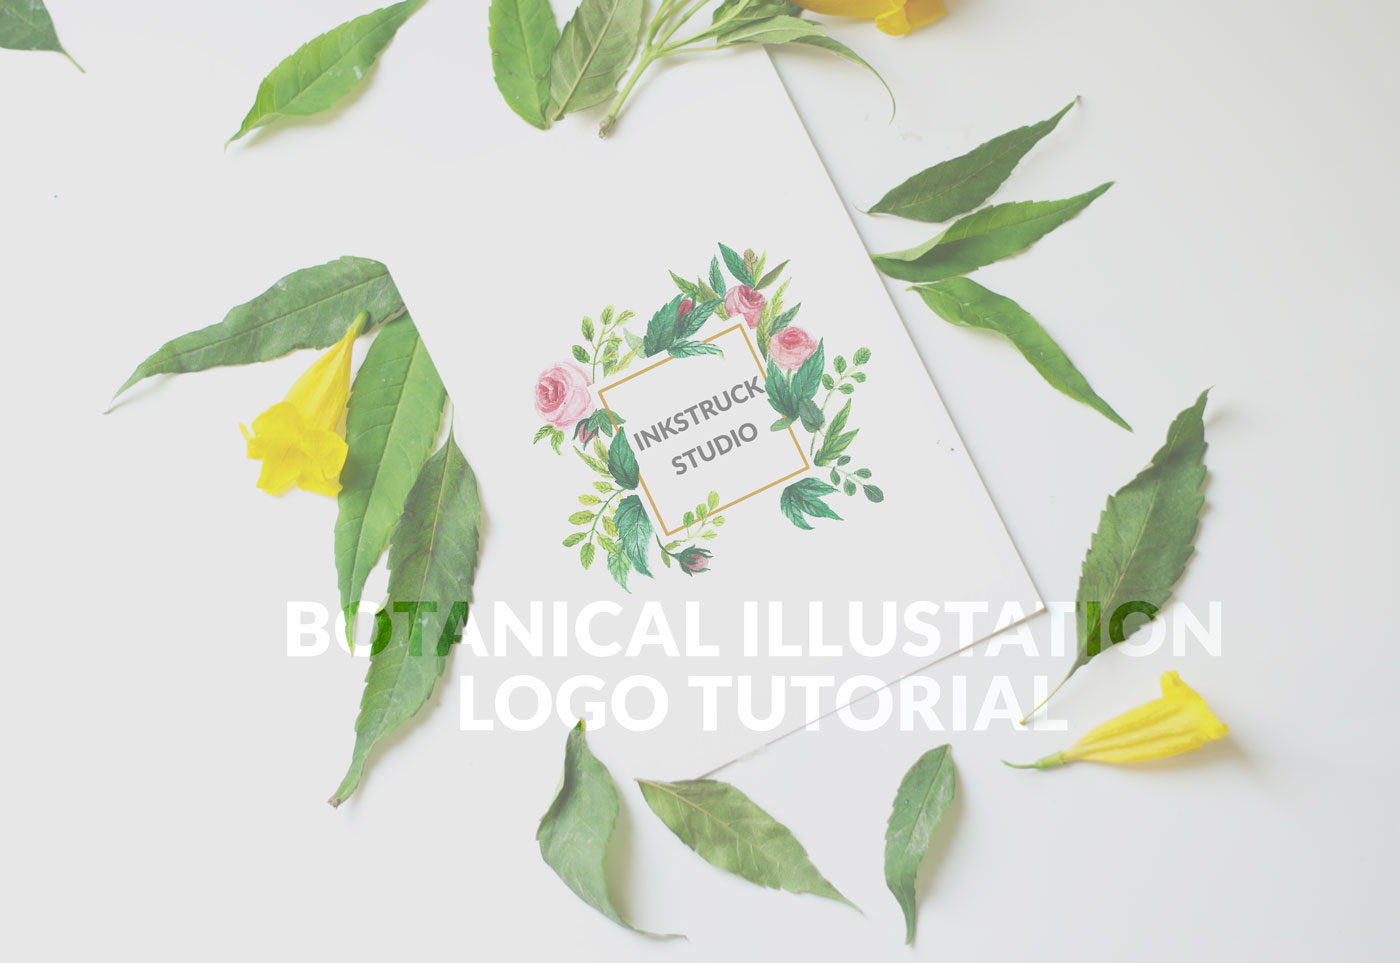 botanical illustration logo